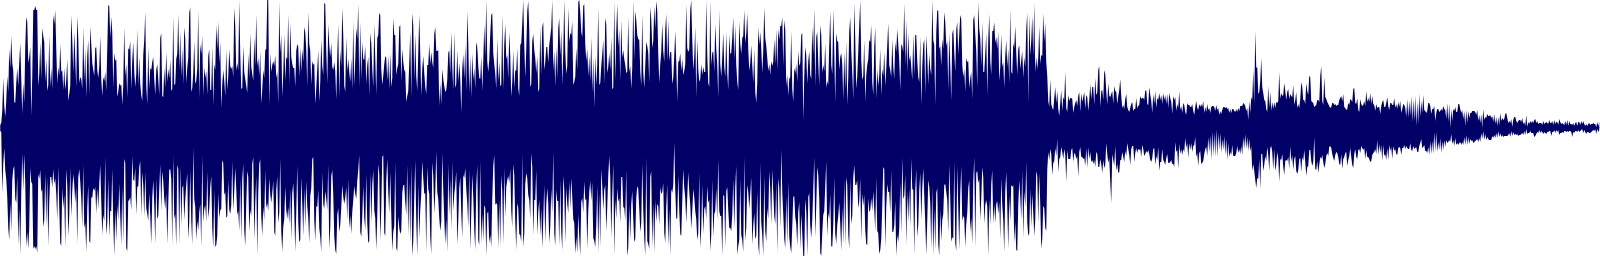 waveform of track #146494